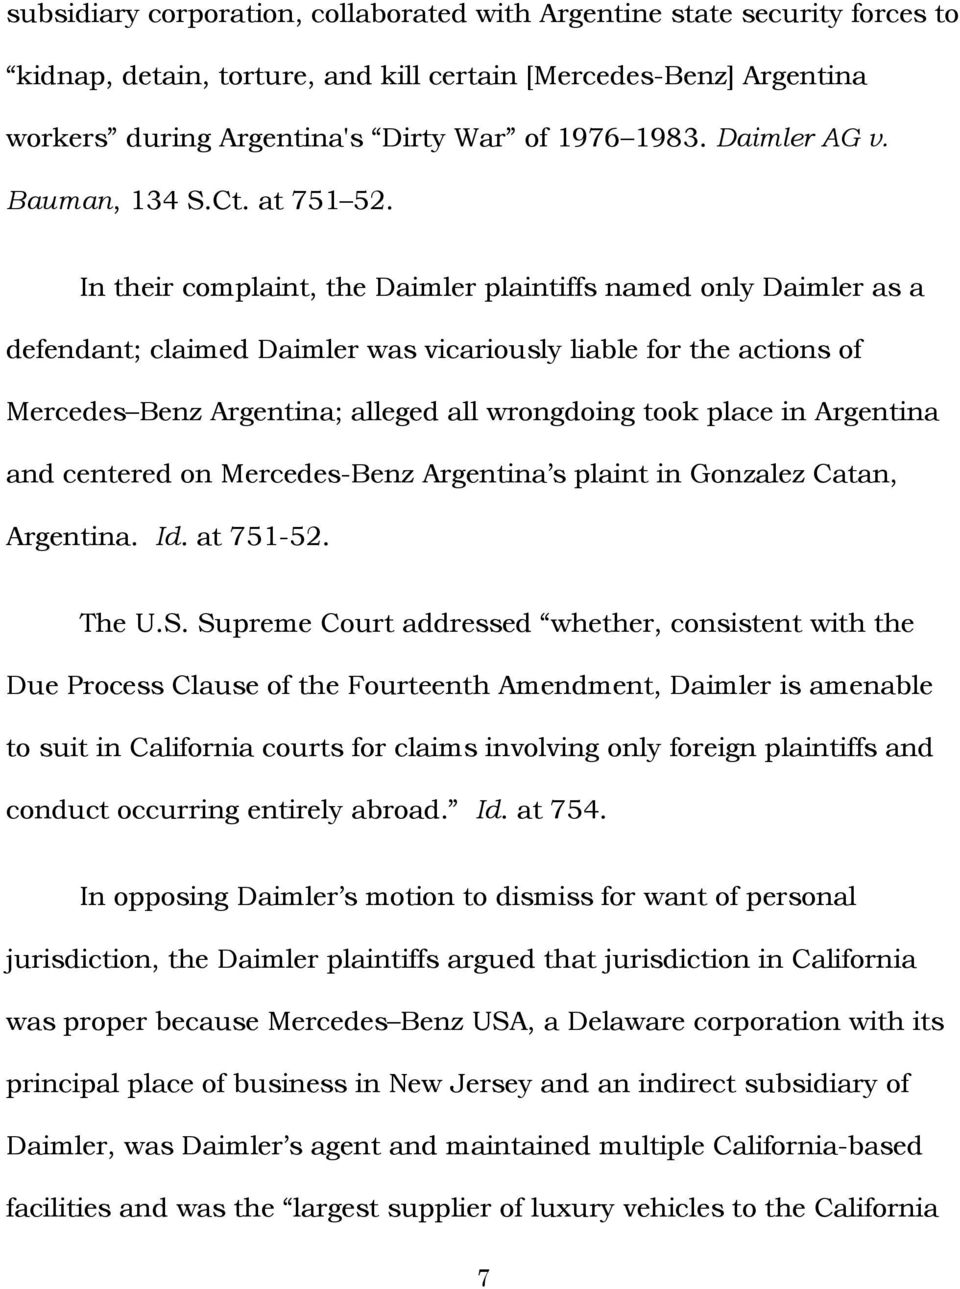 In their complaint, the Daimler plaintiffs named only Daimler as a defendant; claimed Daimler was vicariously liable for the actions of Mercedes Benz Argentina; alleged all wrongdoing took place in